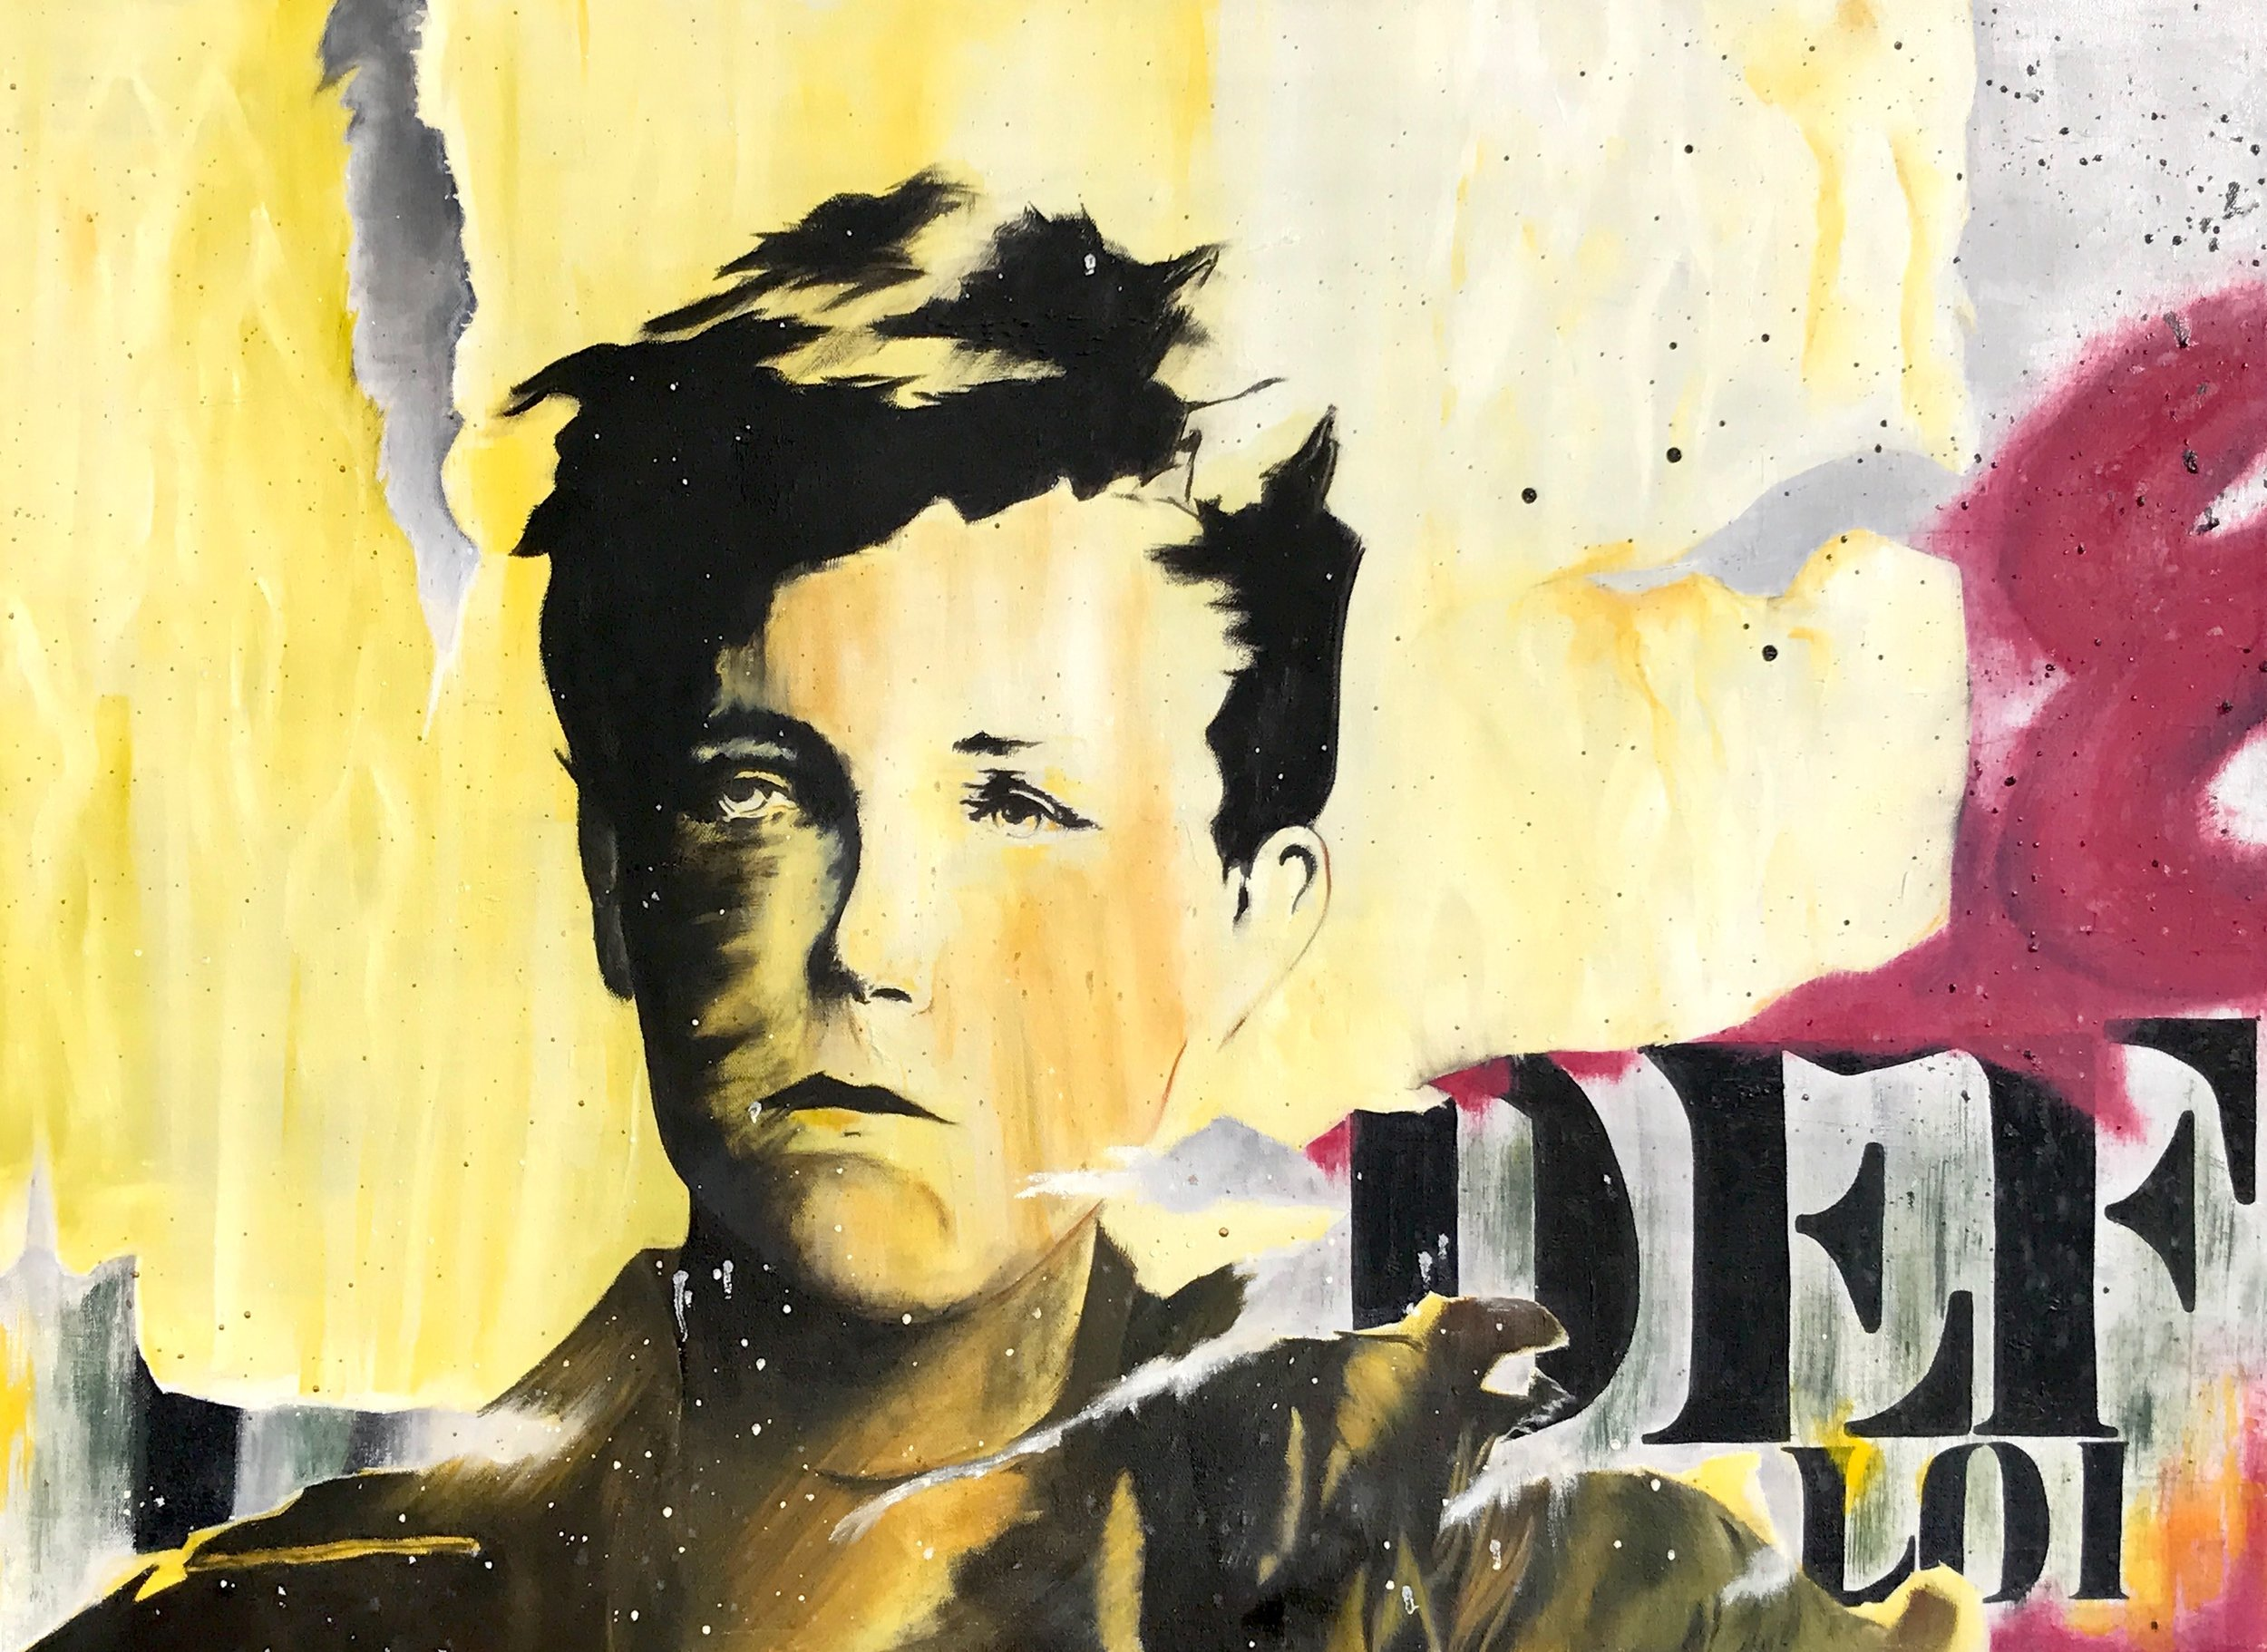 Oil on canvas rework of Arthur Rimbaud street art